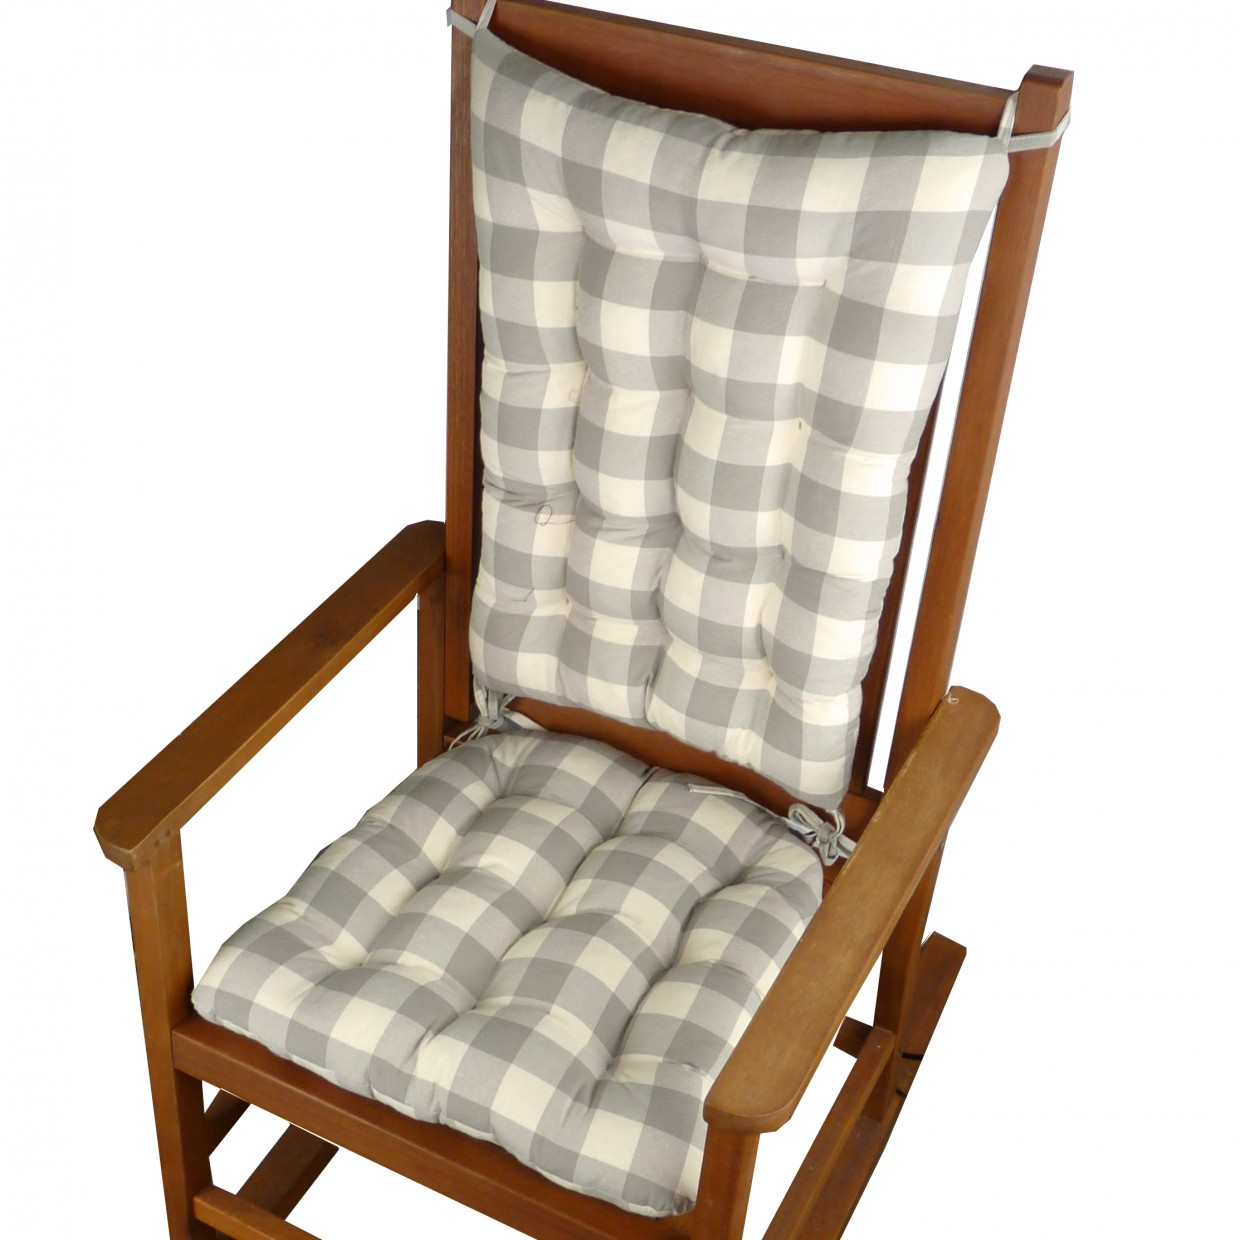 Rocking Chair Cushion | Cracker Barrel Rocking Chair Cushions | Glider Rocking Chair Cushions Replacement